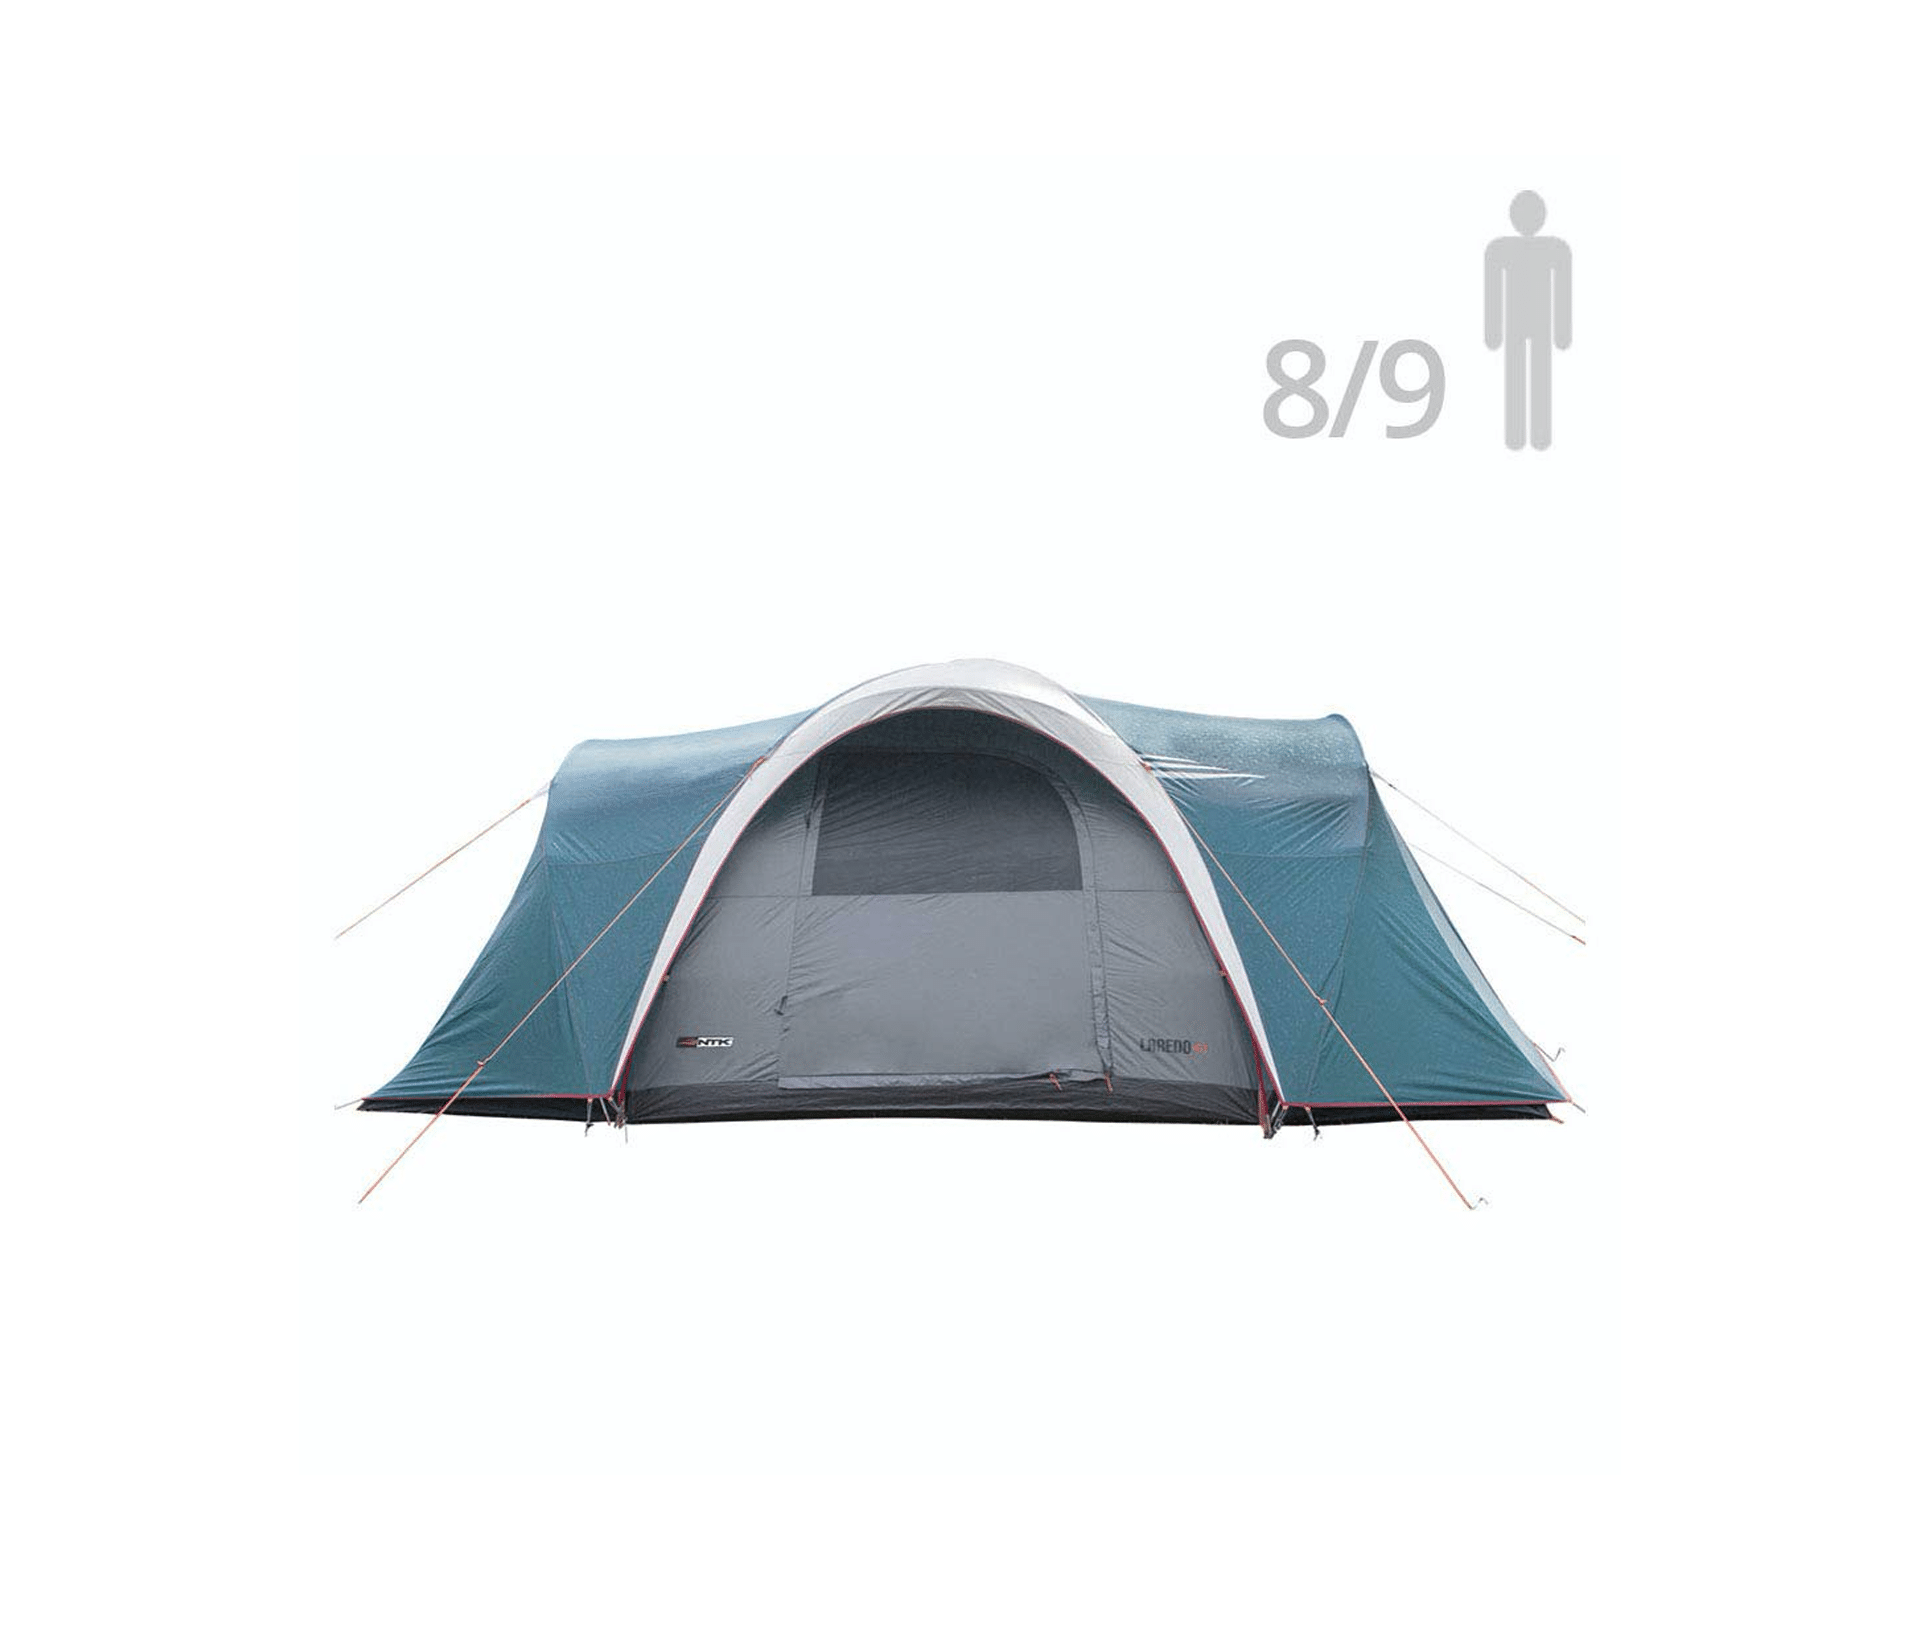 NTK Laredo GT 8 Person Camping Tent